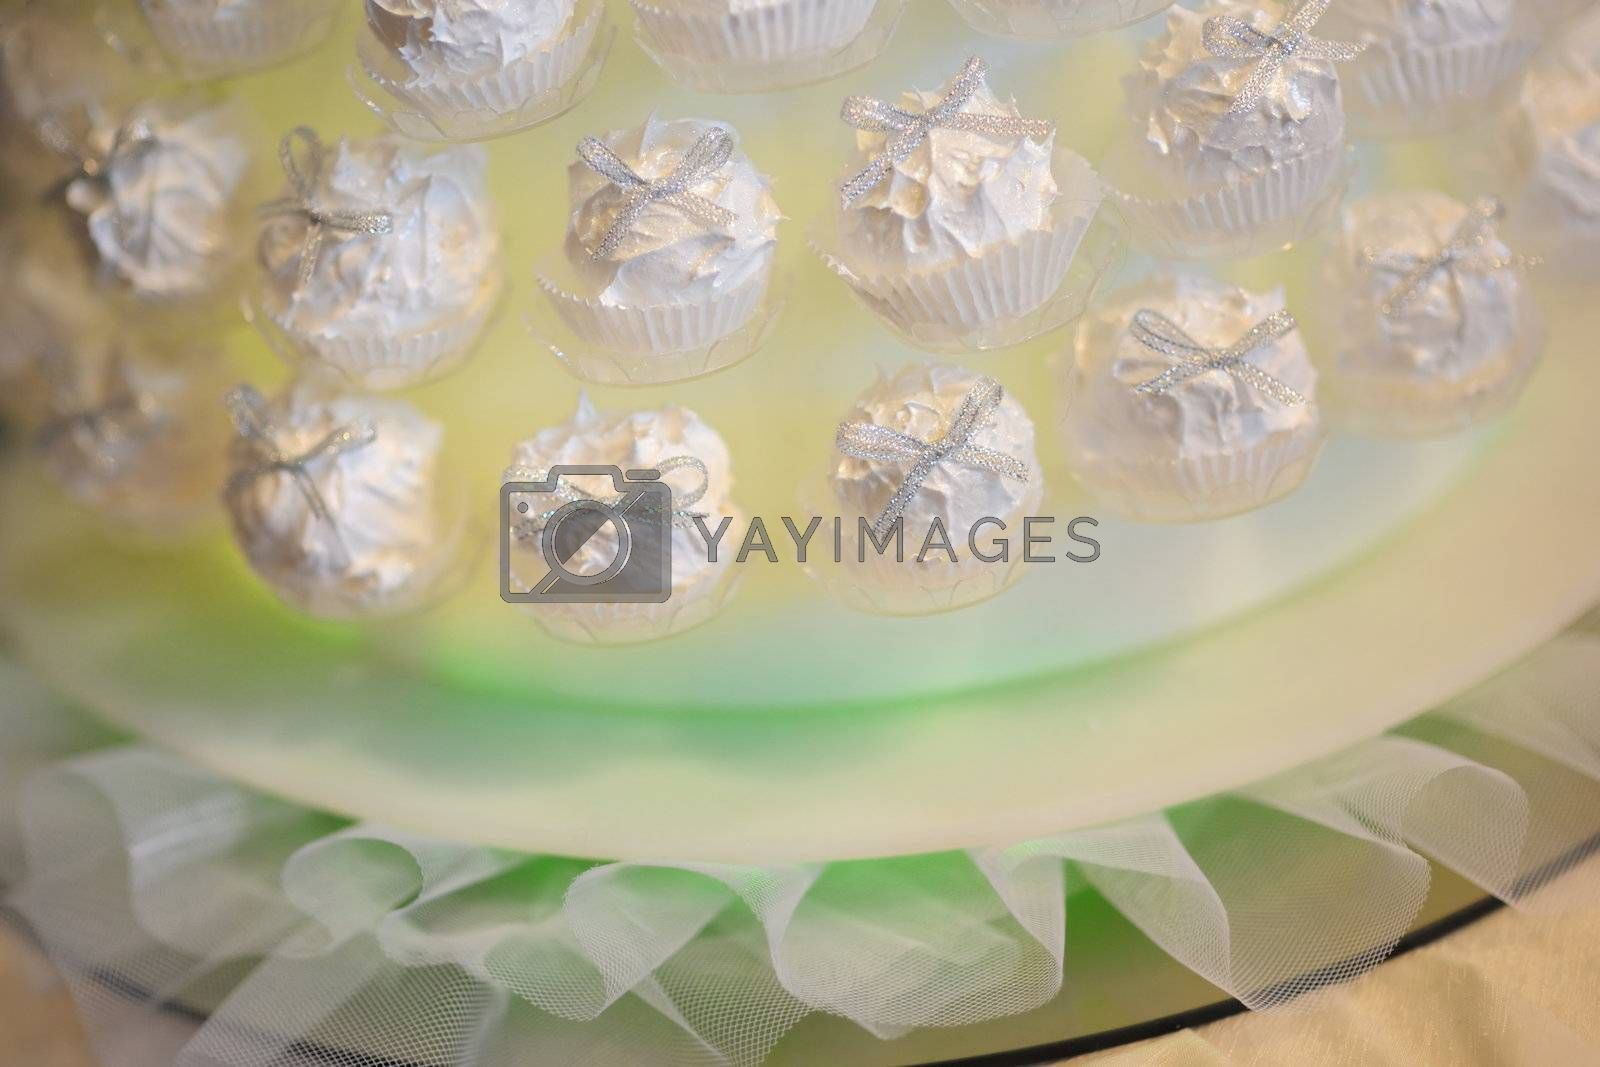 A bunch of wedding cupcakes on the nice green plate